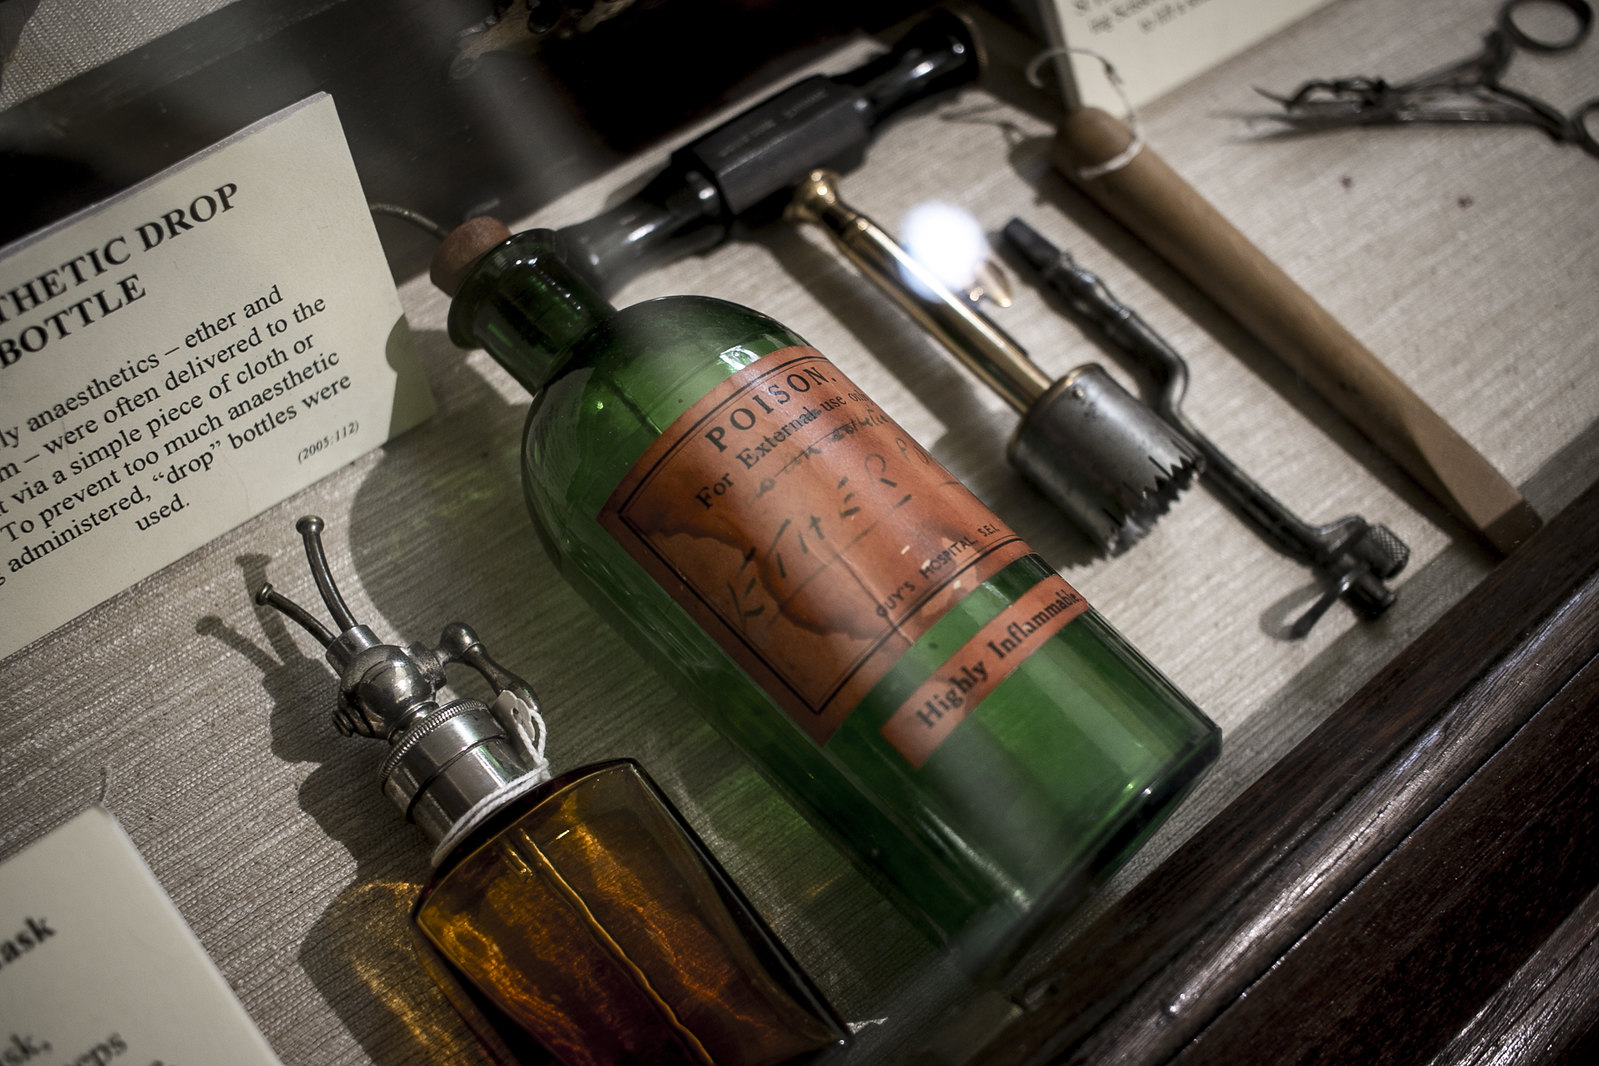 the old operating theatre, cabinet of curiosities, old medical instruments, herb garret